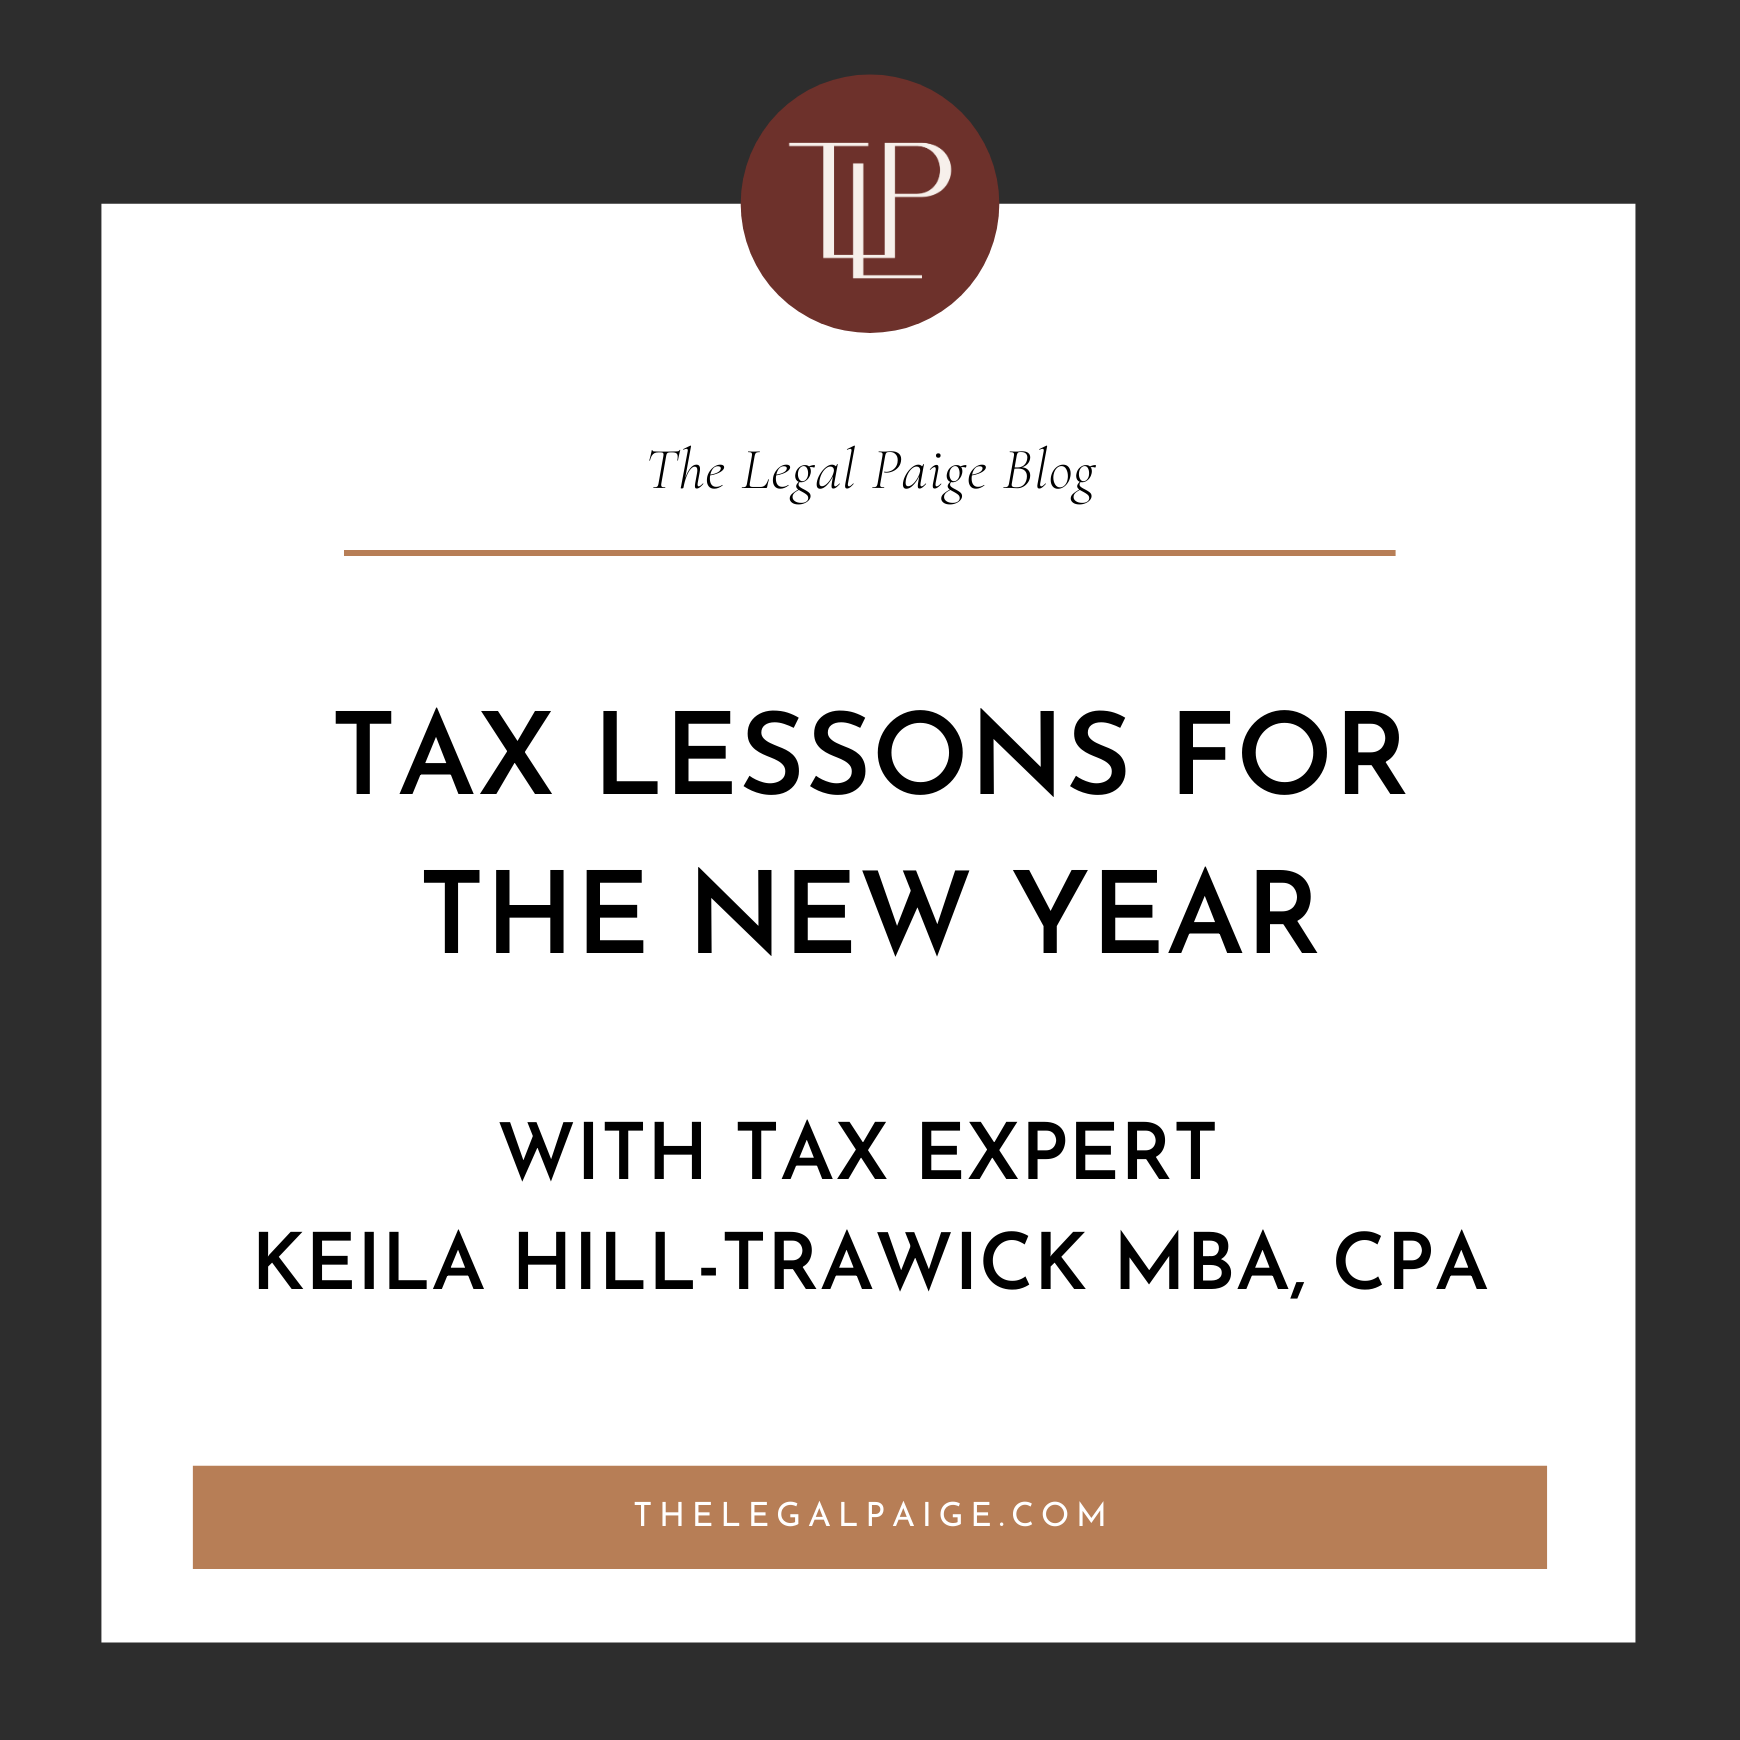 Tax Lessons For The New Year With Tax Expert Keila Hill-Trawick MBA, CPA